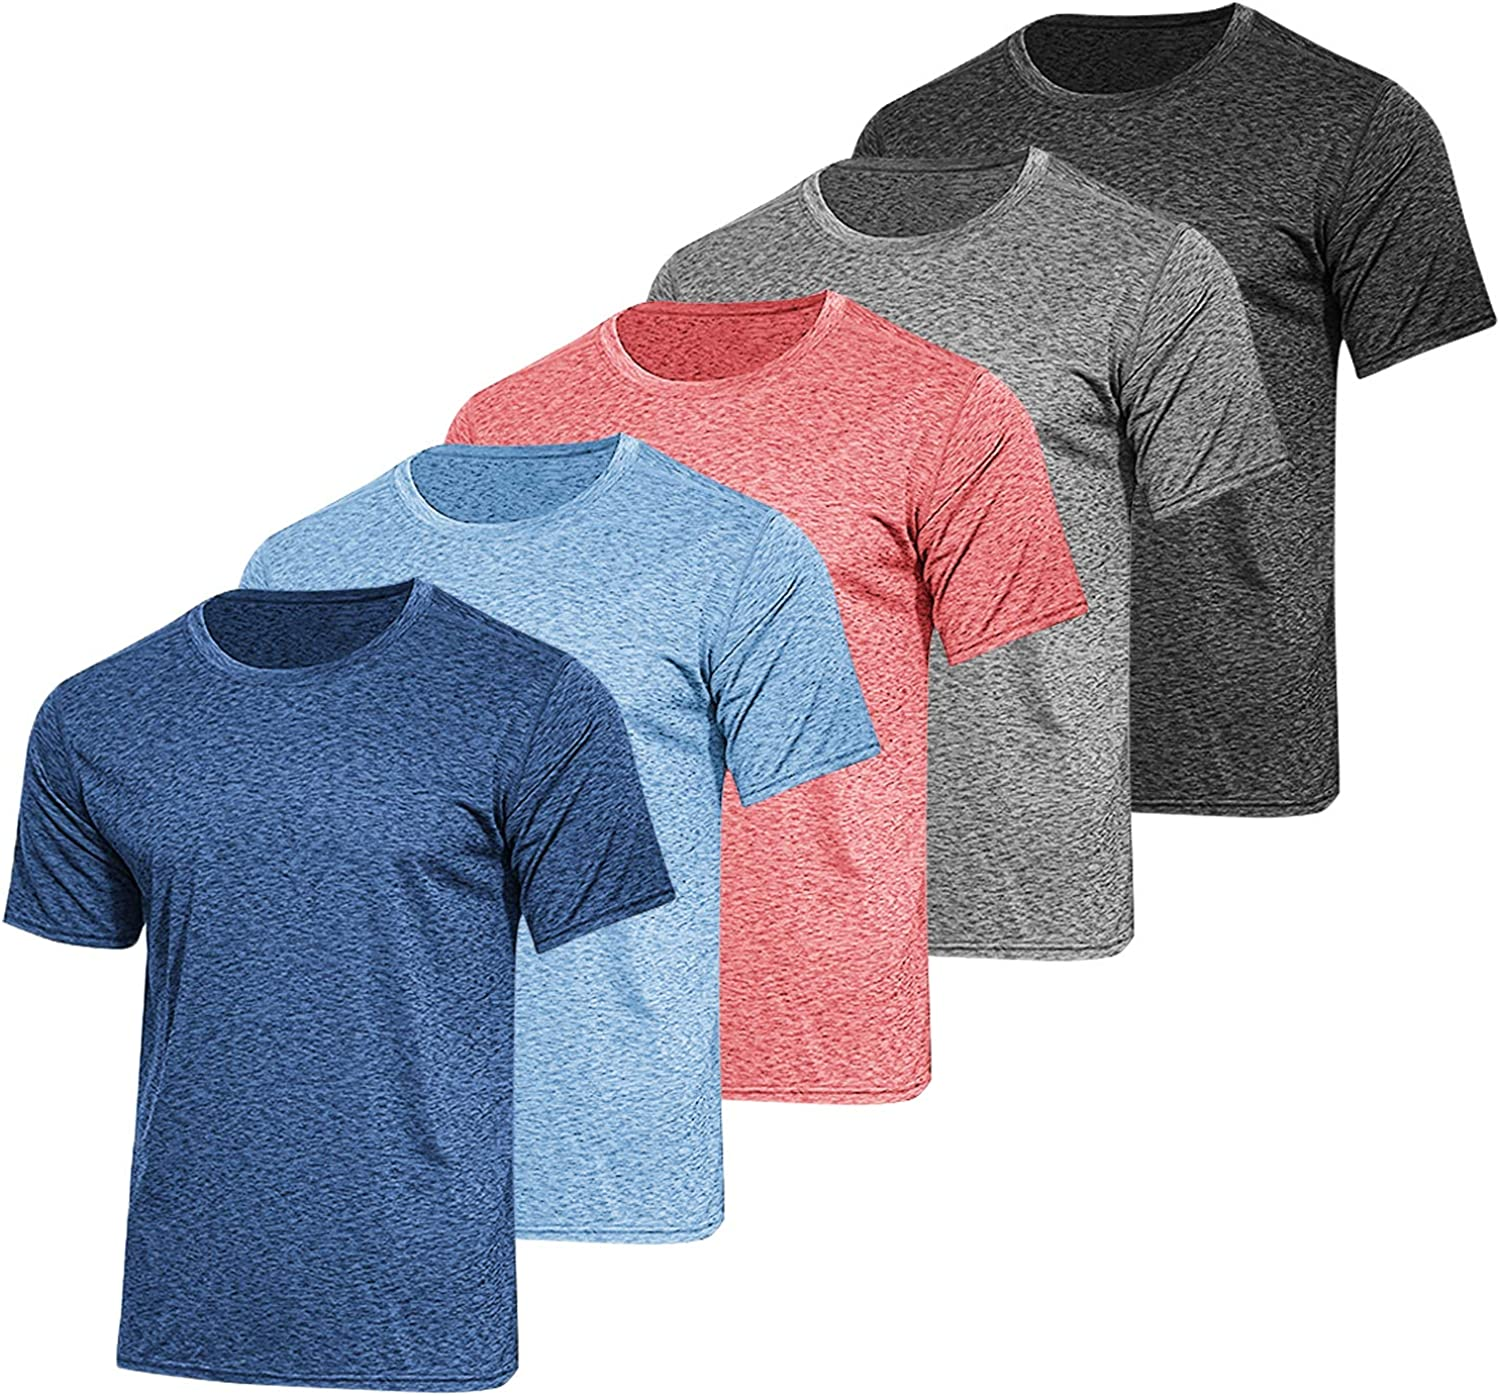 COOFANDY Men's 5 Pack Athletic T Shirts Short Sleeve Training Running Shirts Quick Dry Workout Gym Tee Tops